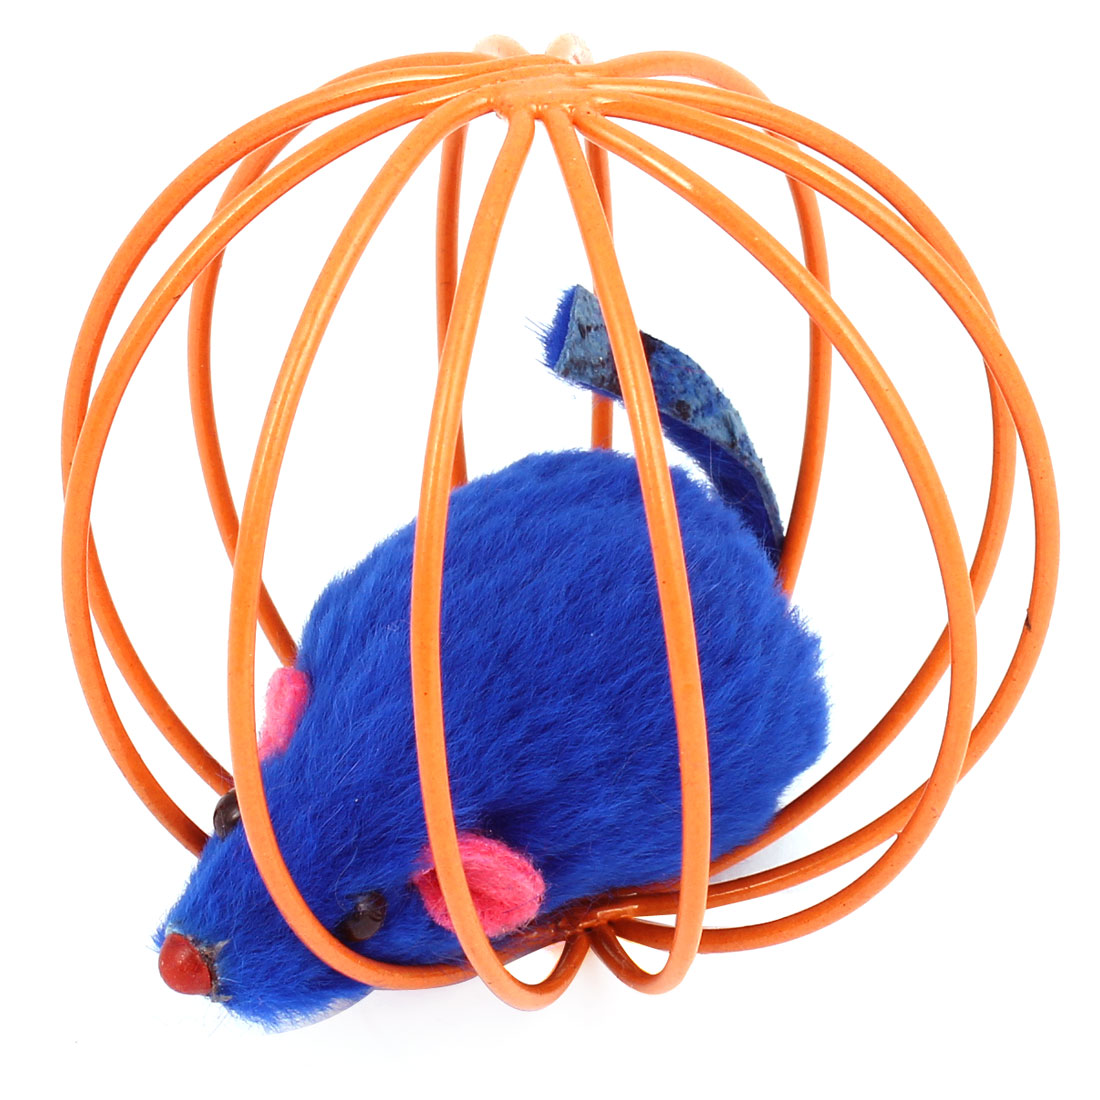 Dark Blue False Mouse Rat In Orange Metal Ball Shape Cage Pet Toy for Dog Cat Playing